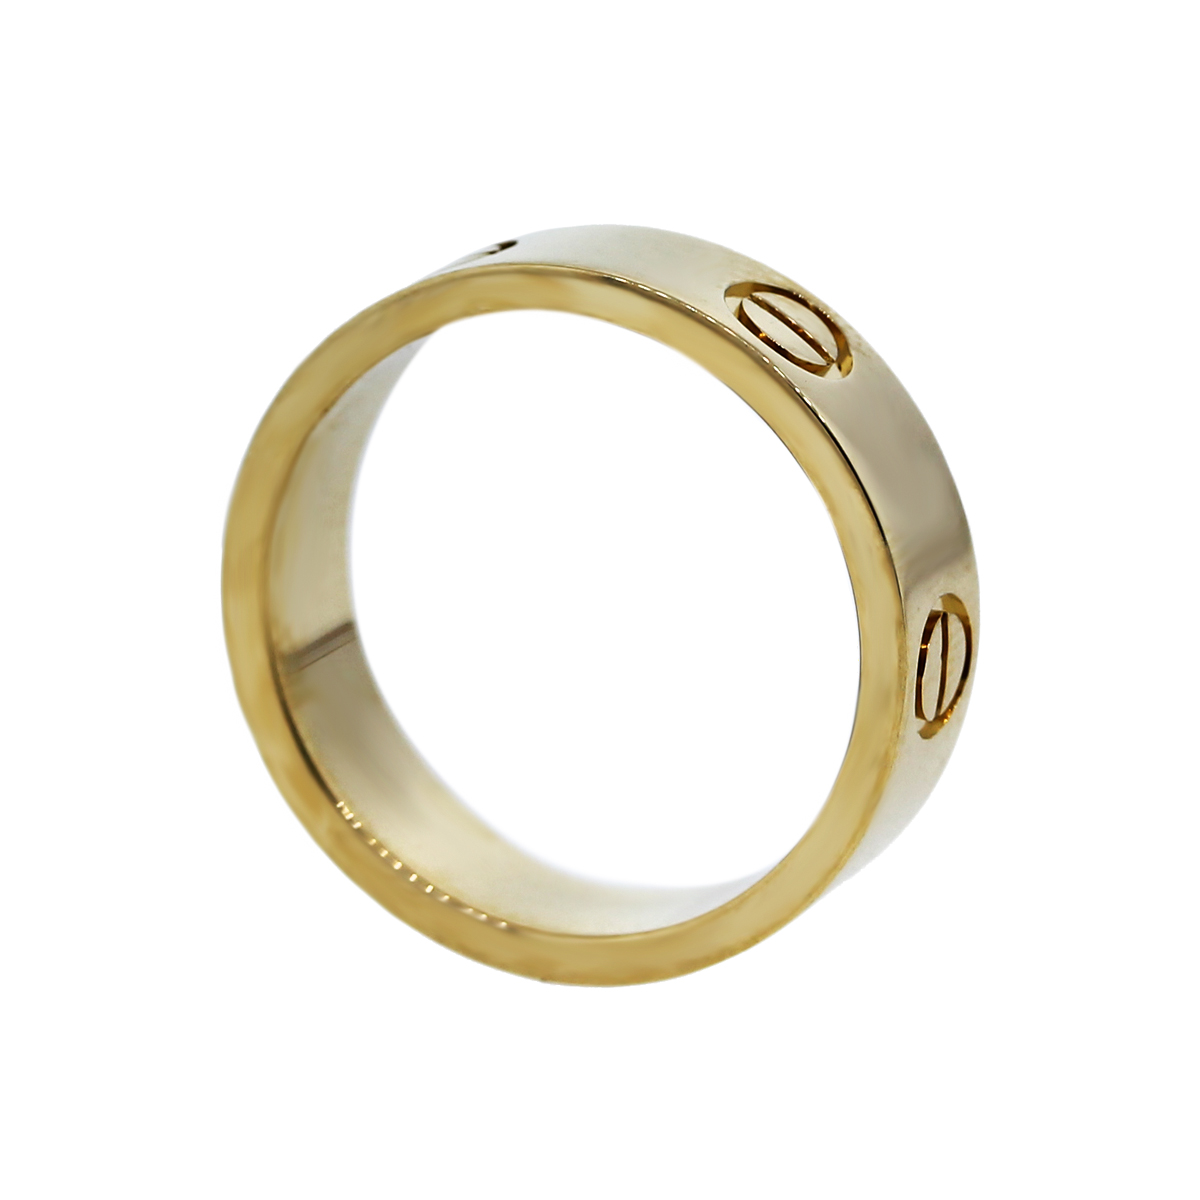 Cartier 18K Yellow Gold Love Ring Size 54-Boca Raton